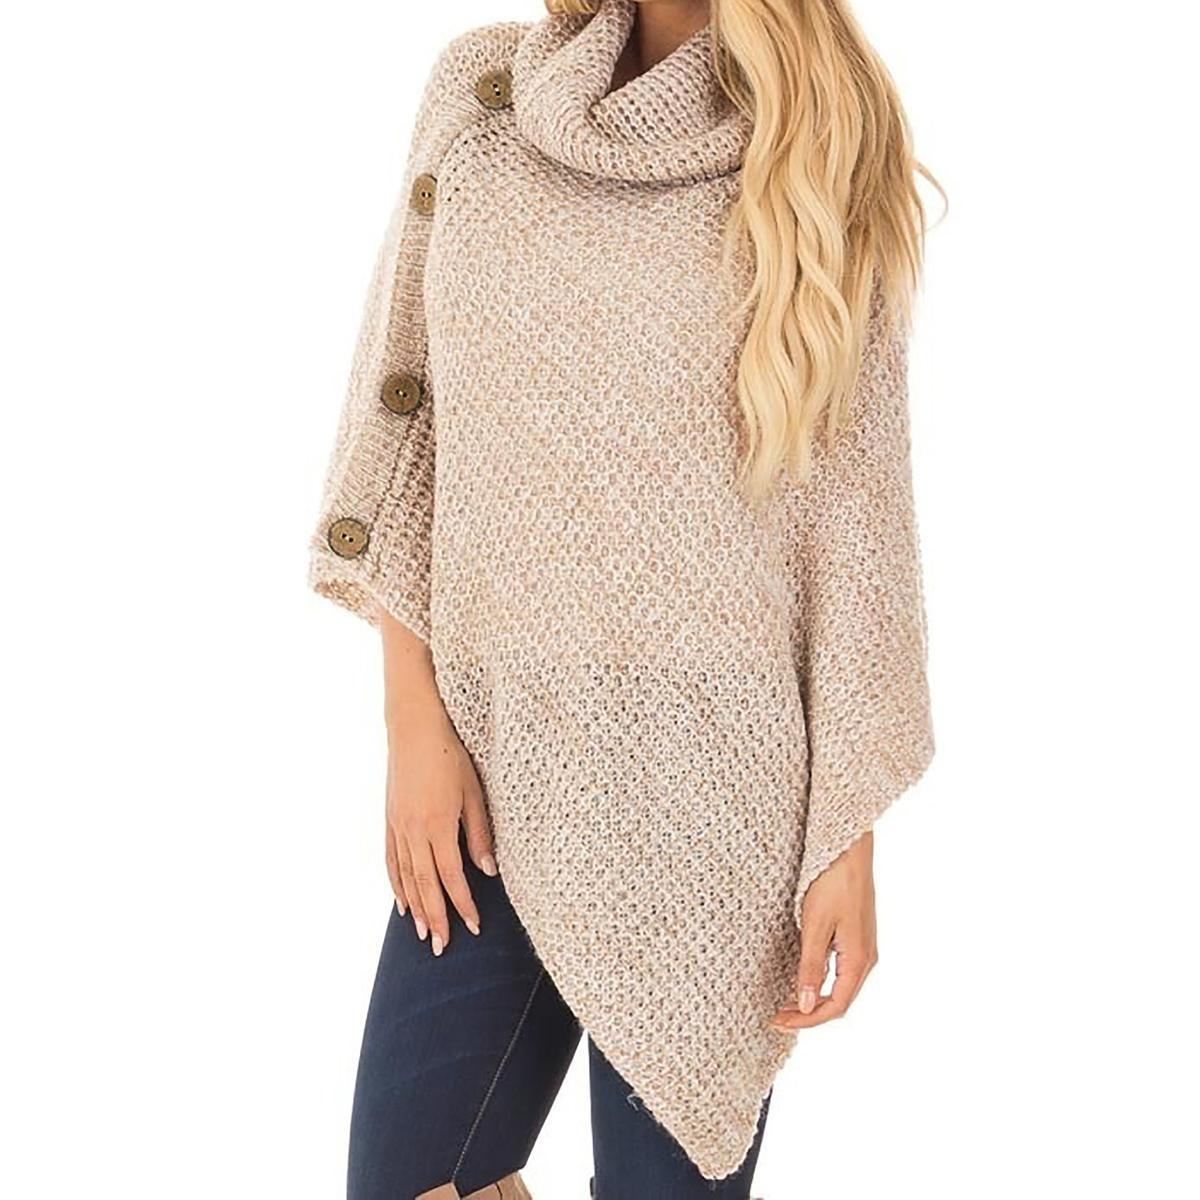 5405219bfe Women Knit Sweaters Autumn Winter Knitwear Turtleneck Batwing Sleeve  Buttons Fashion Pullovers Casual Top Knitted Jumper M0179 Online with   48.17 Piece on ...